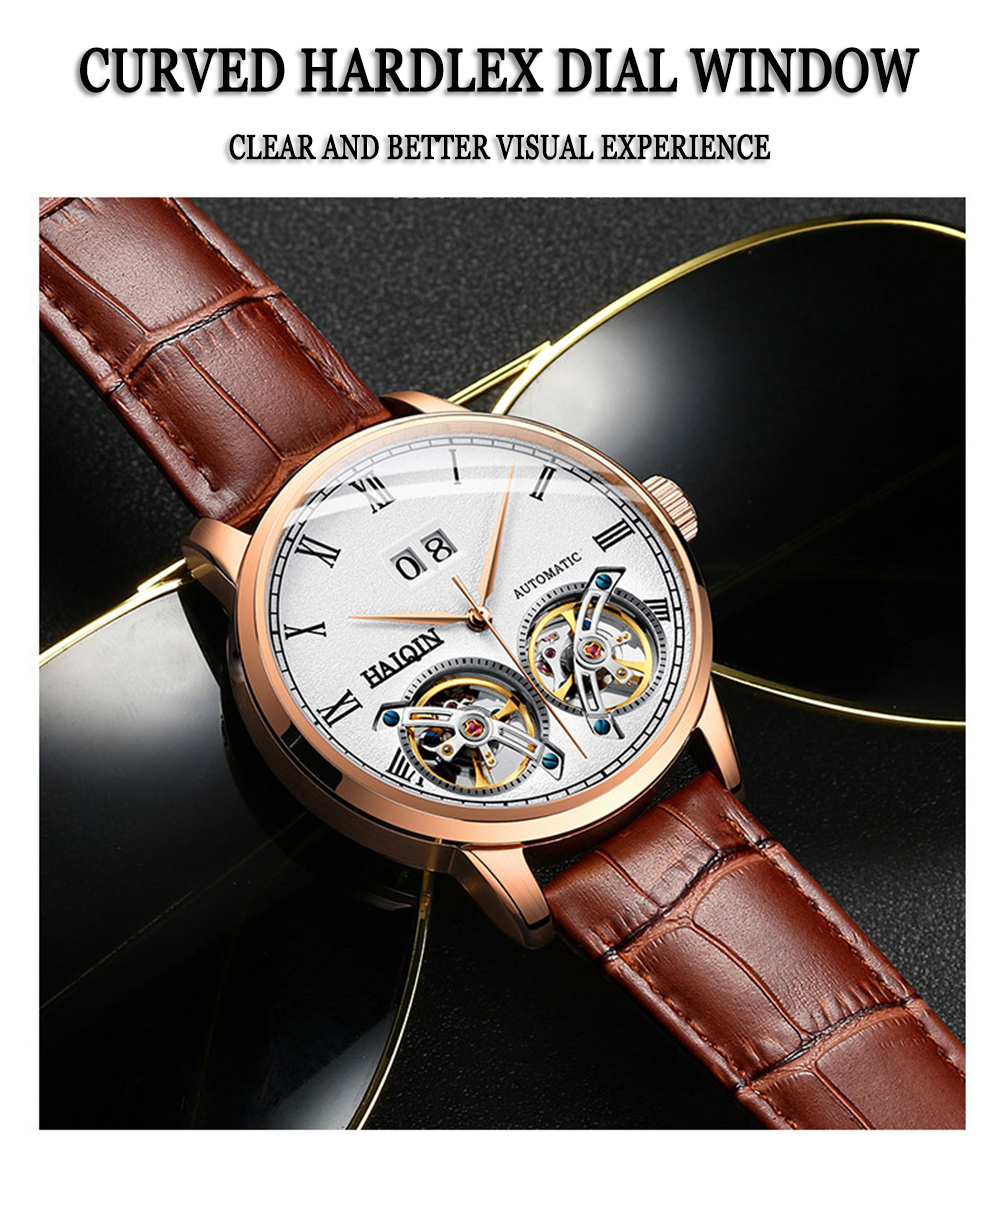 HAIQIN Men's watches Mens Watches top brand luxury Automatic mechanical sport watch men wirstwatch Tourbillon Reloj hombres 2020 HTB1Vp52el1D3KVjSZFyq6zuFpXa7